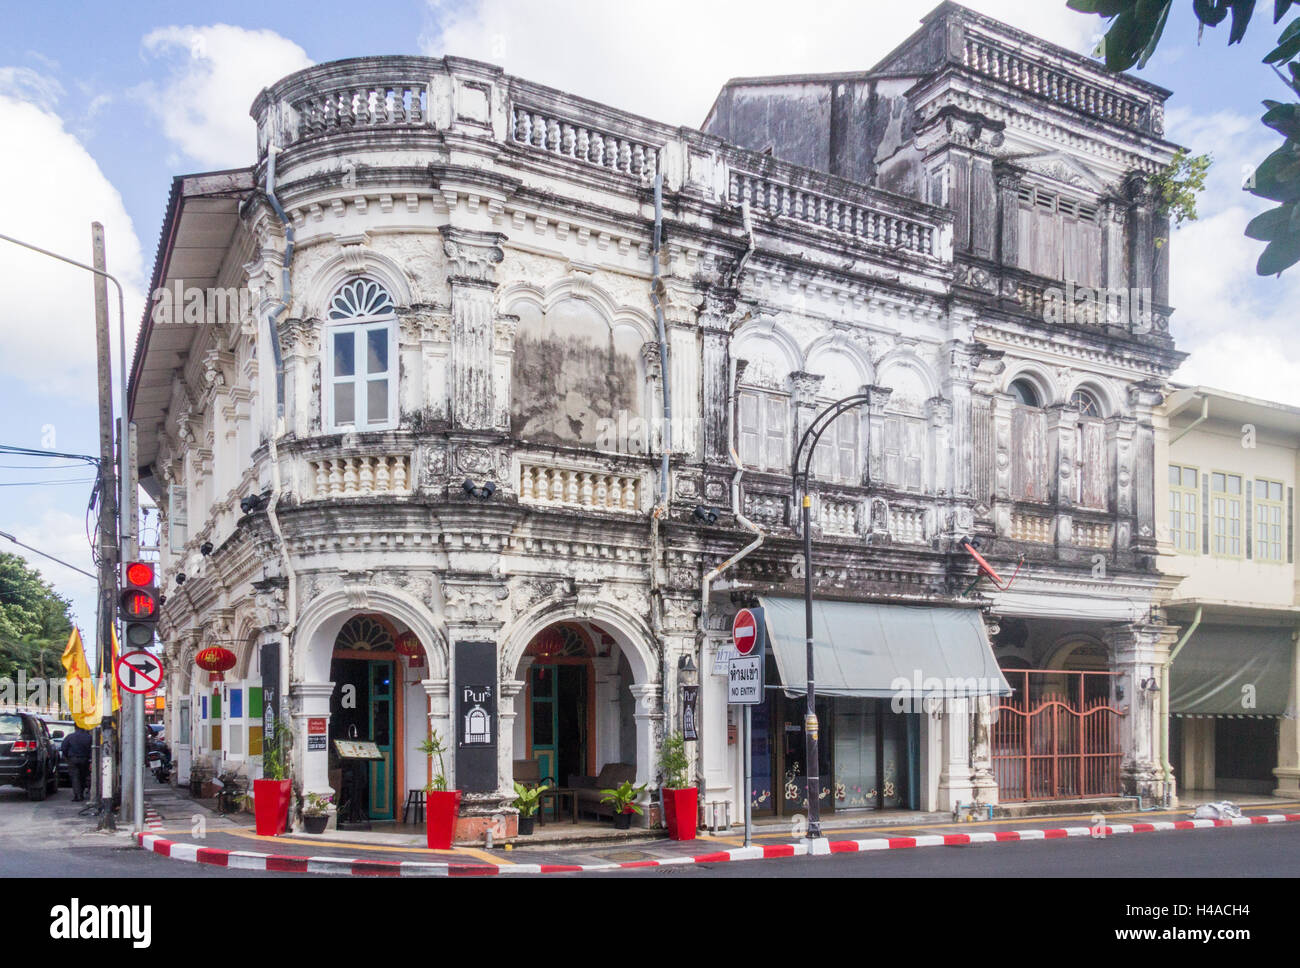 Sino portuguese archiecture building on the corner of Dibuk road and Yaowarat road in old Phuket Town, Thailand - Stock Image